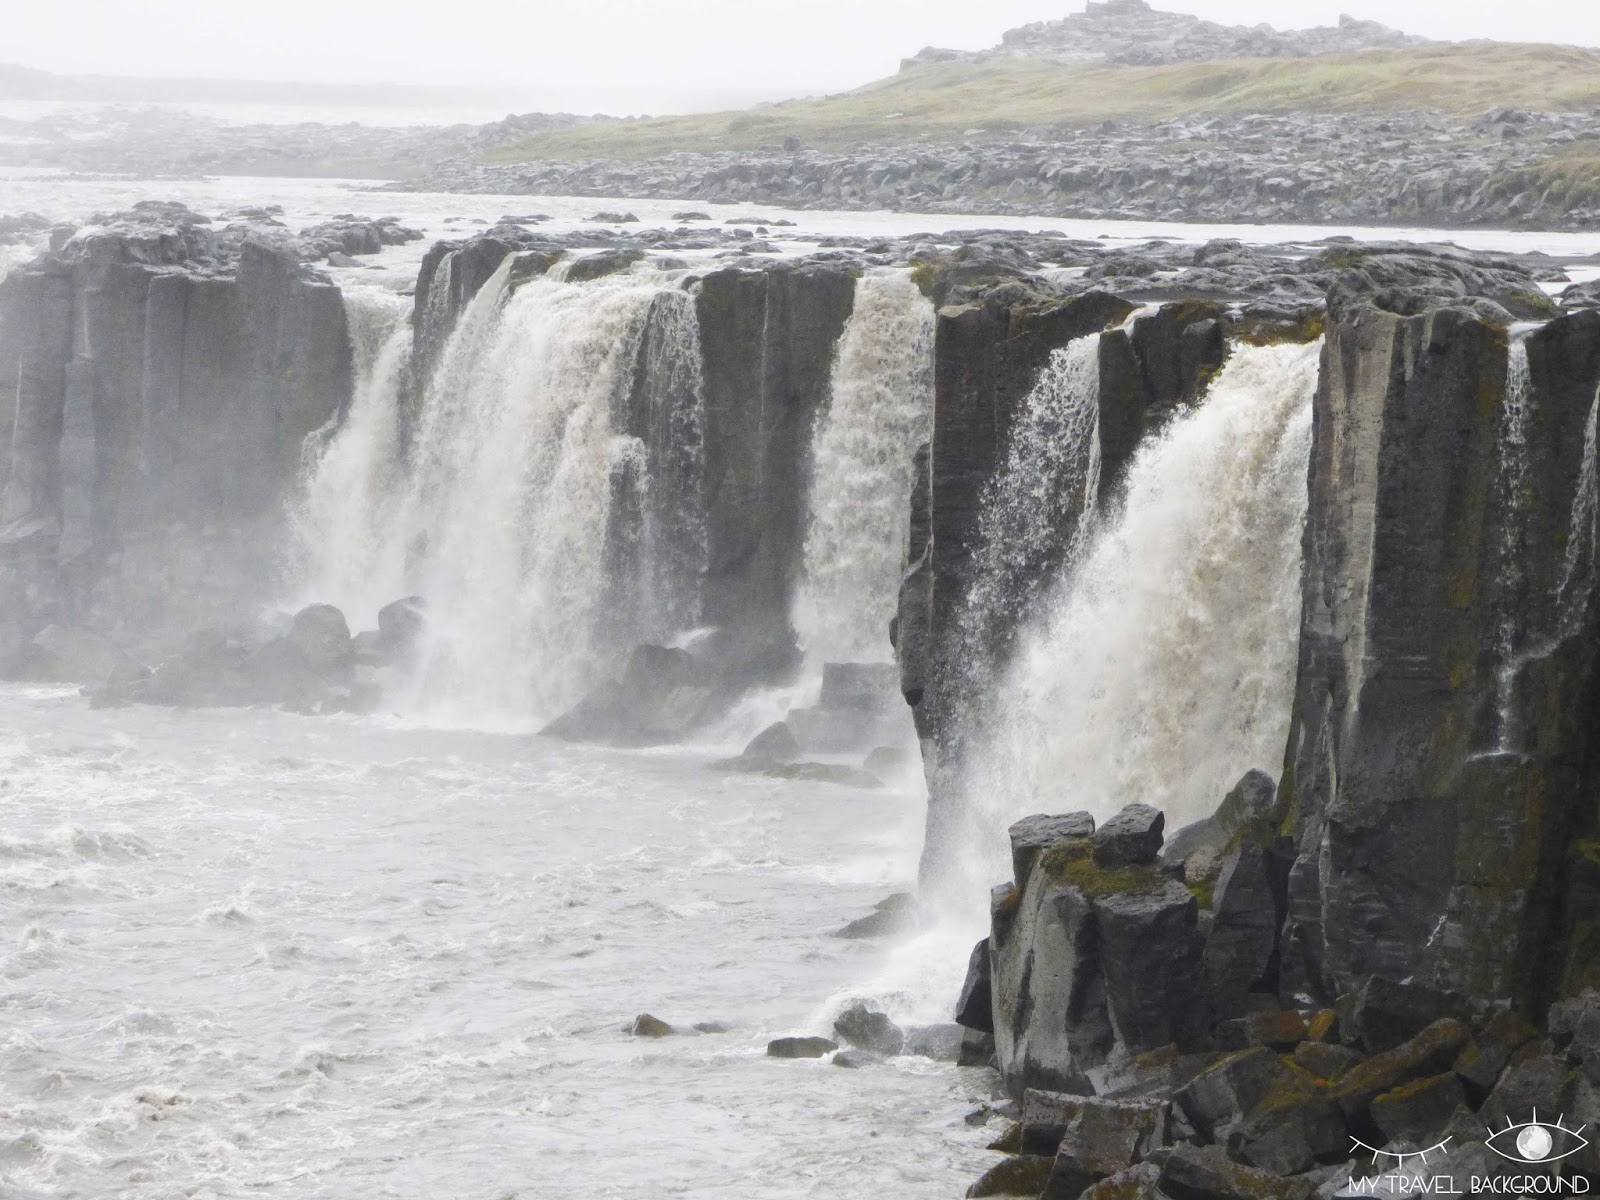 My Travel Background : 2 jours autour du lac Myvatn en Islande - Cascade de Dettifoss et Selfoss